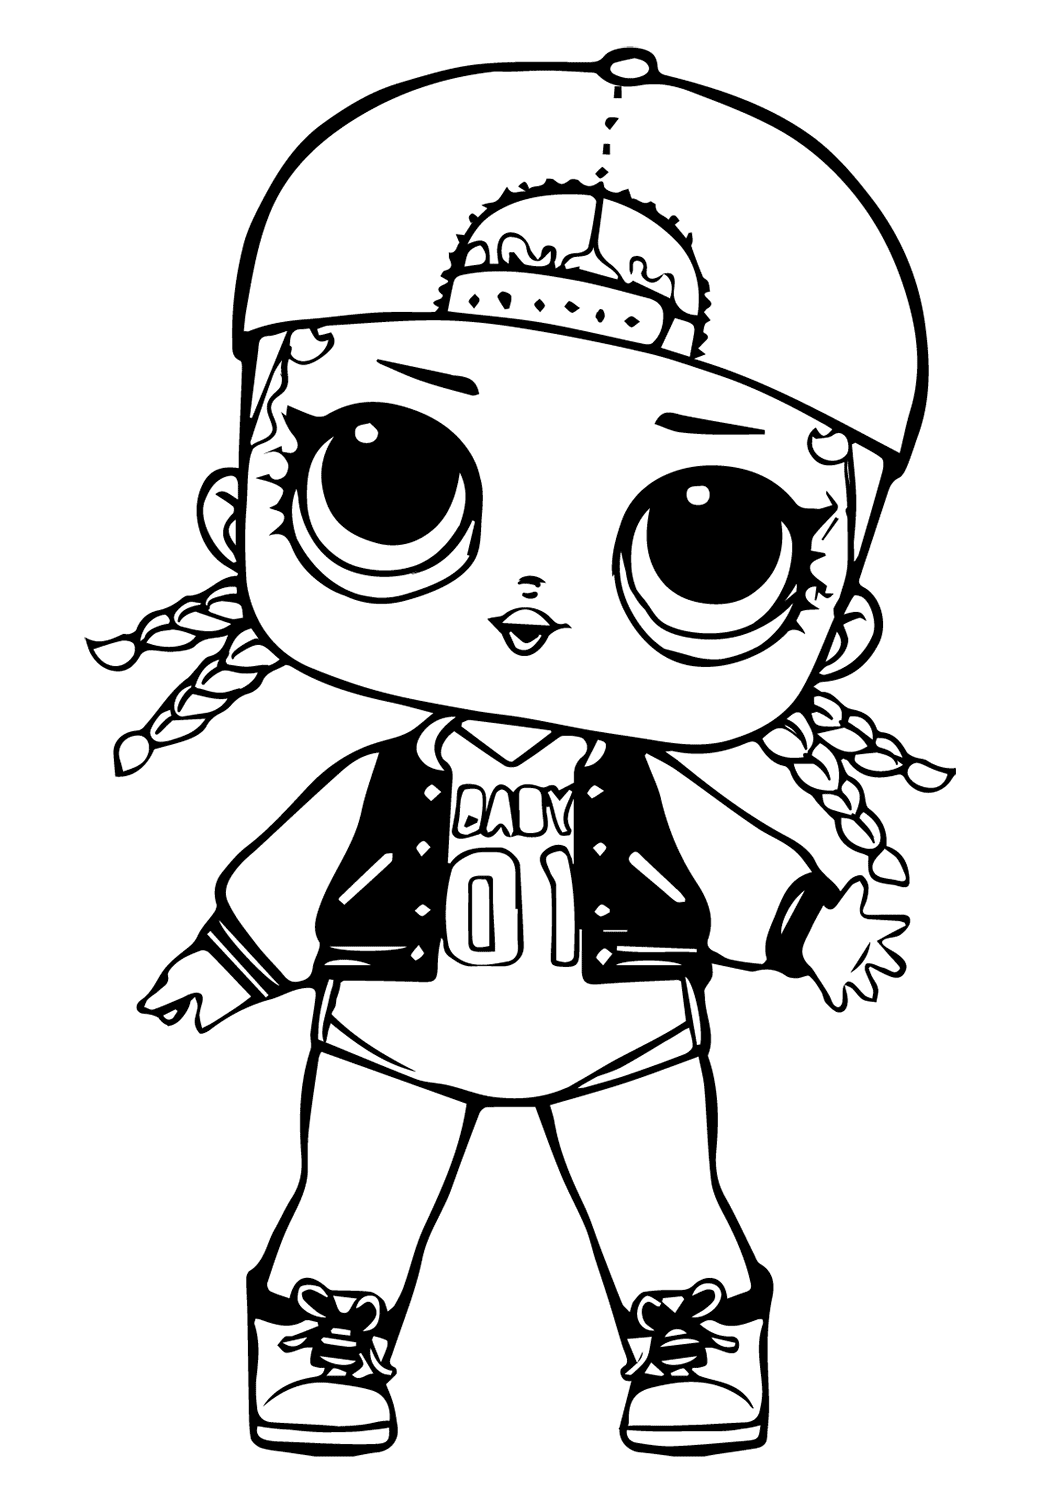 lol toy coloring pages lol surprise dolls coloring pages free printable pages coloring lol toy 1 1